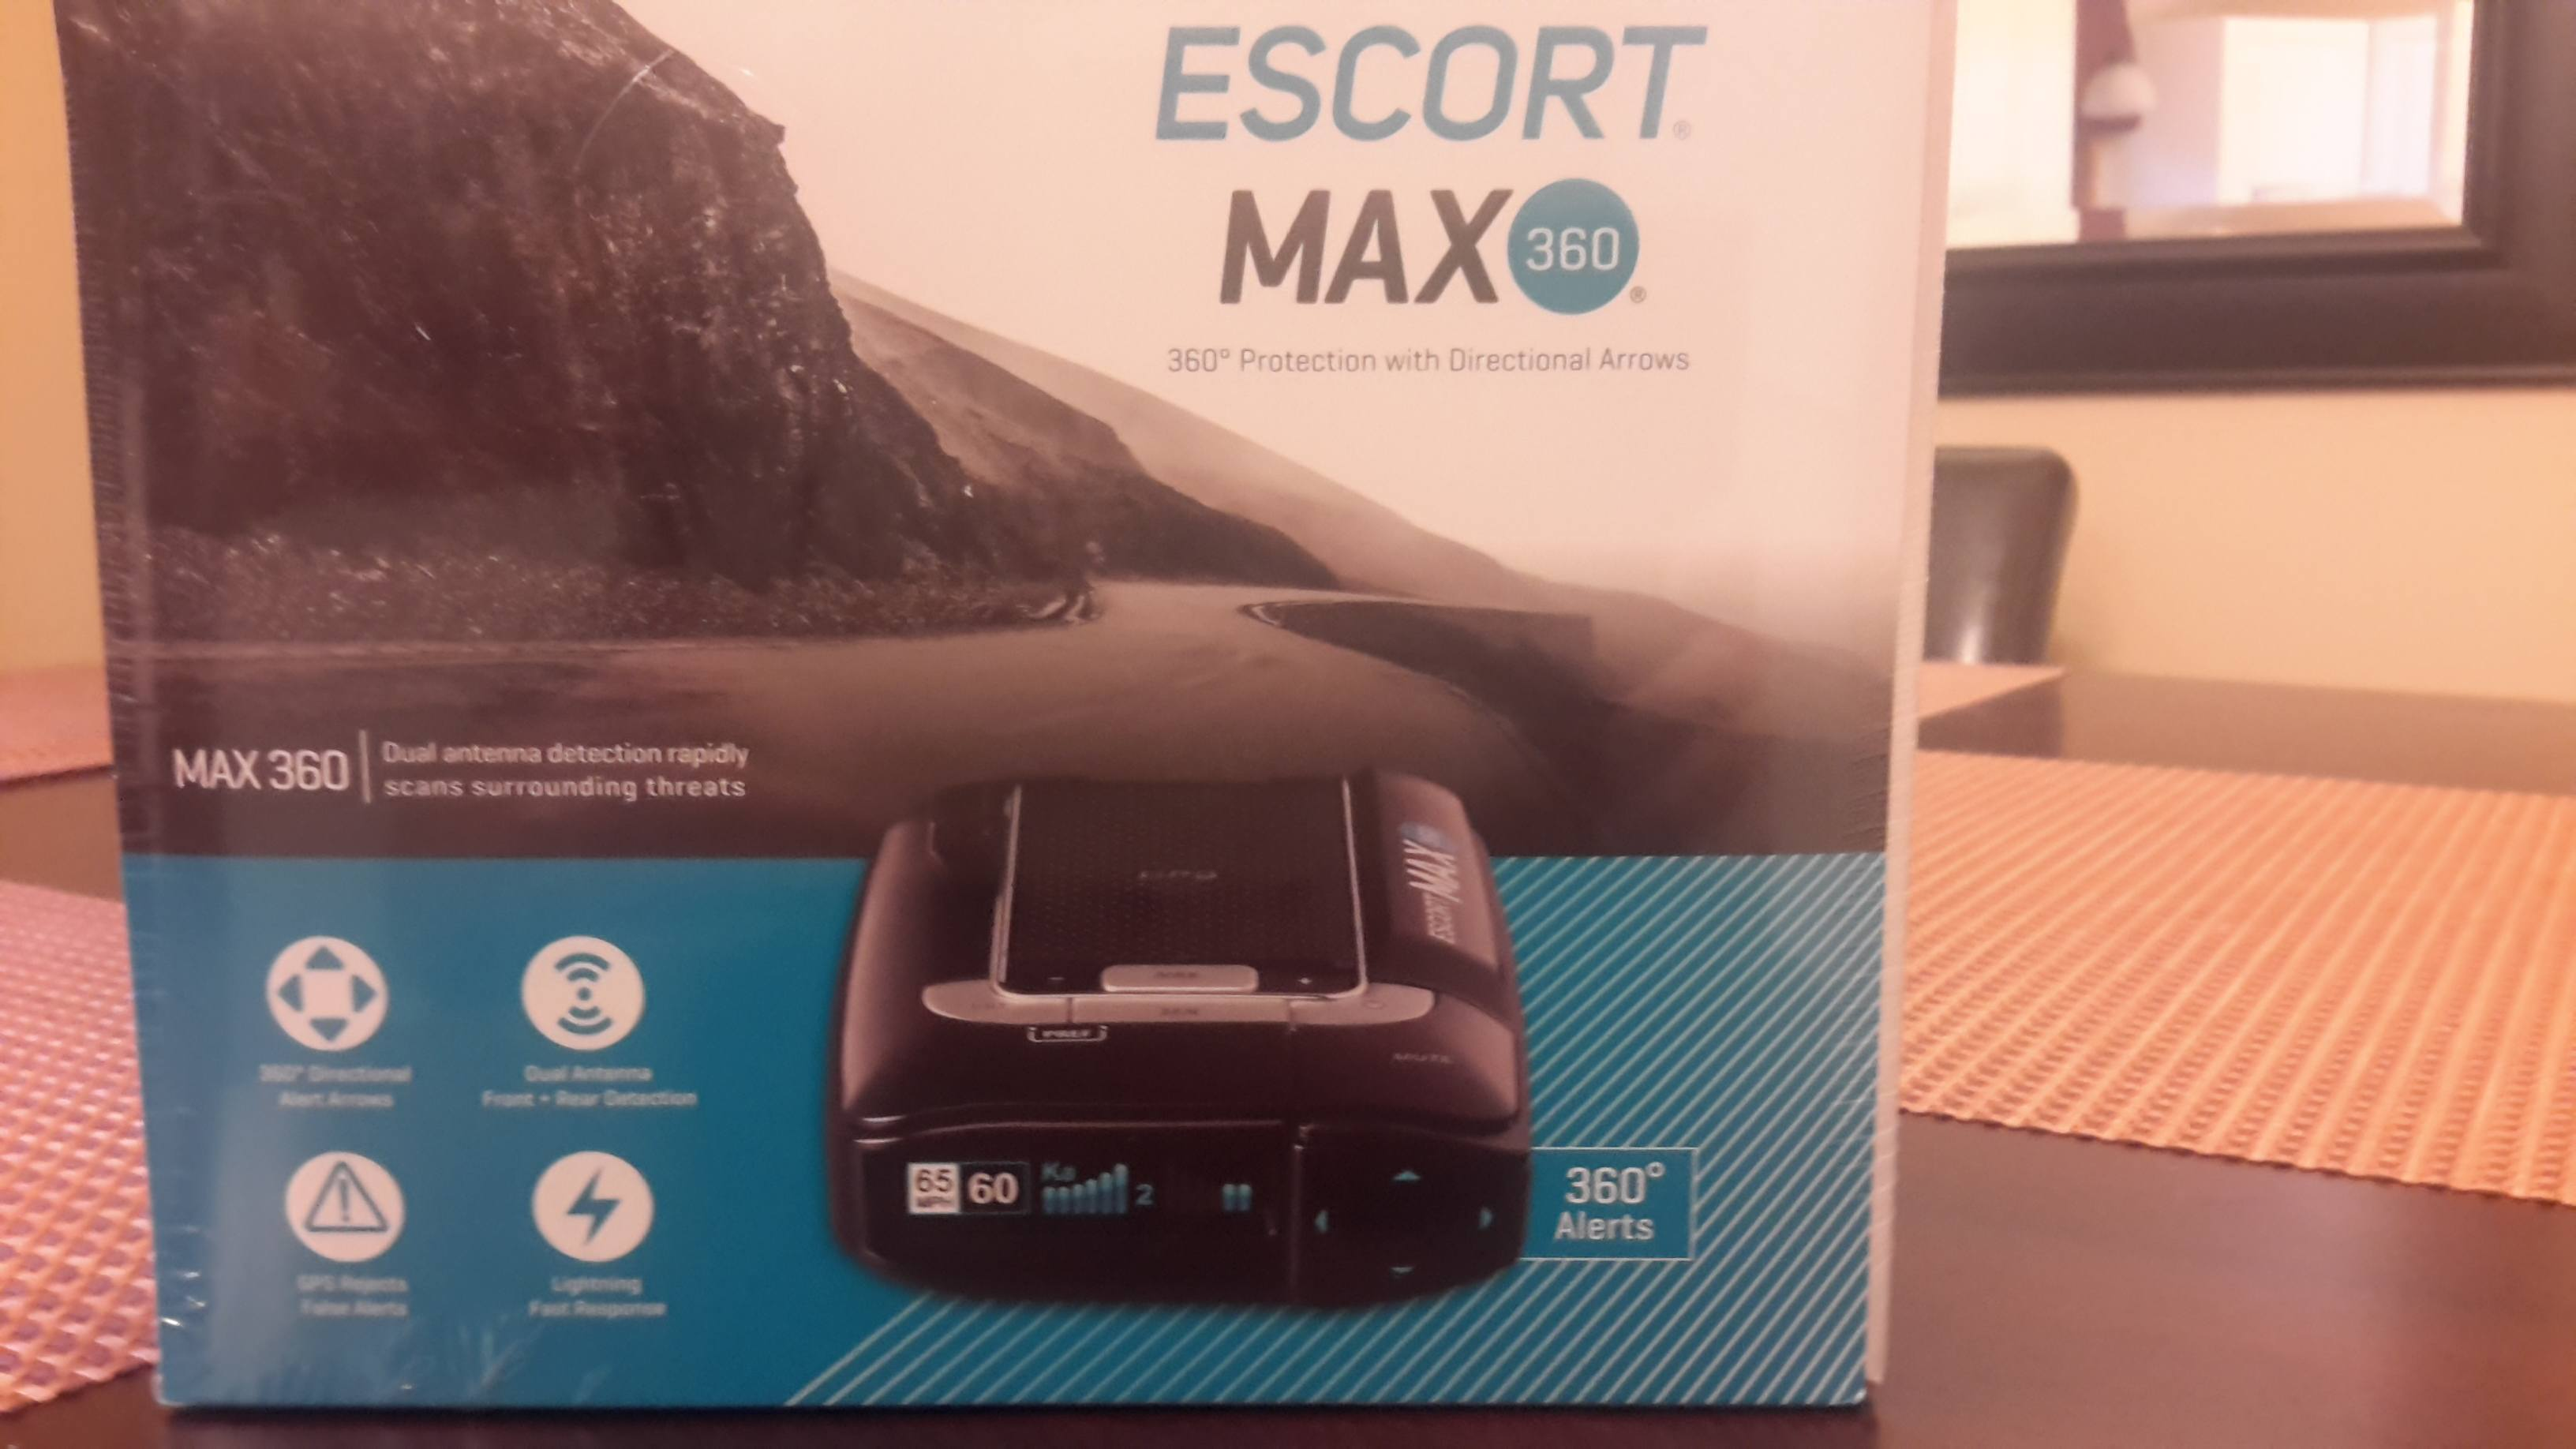 escort max 360 package